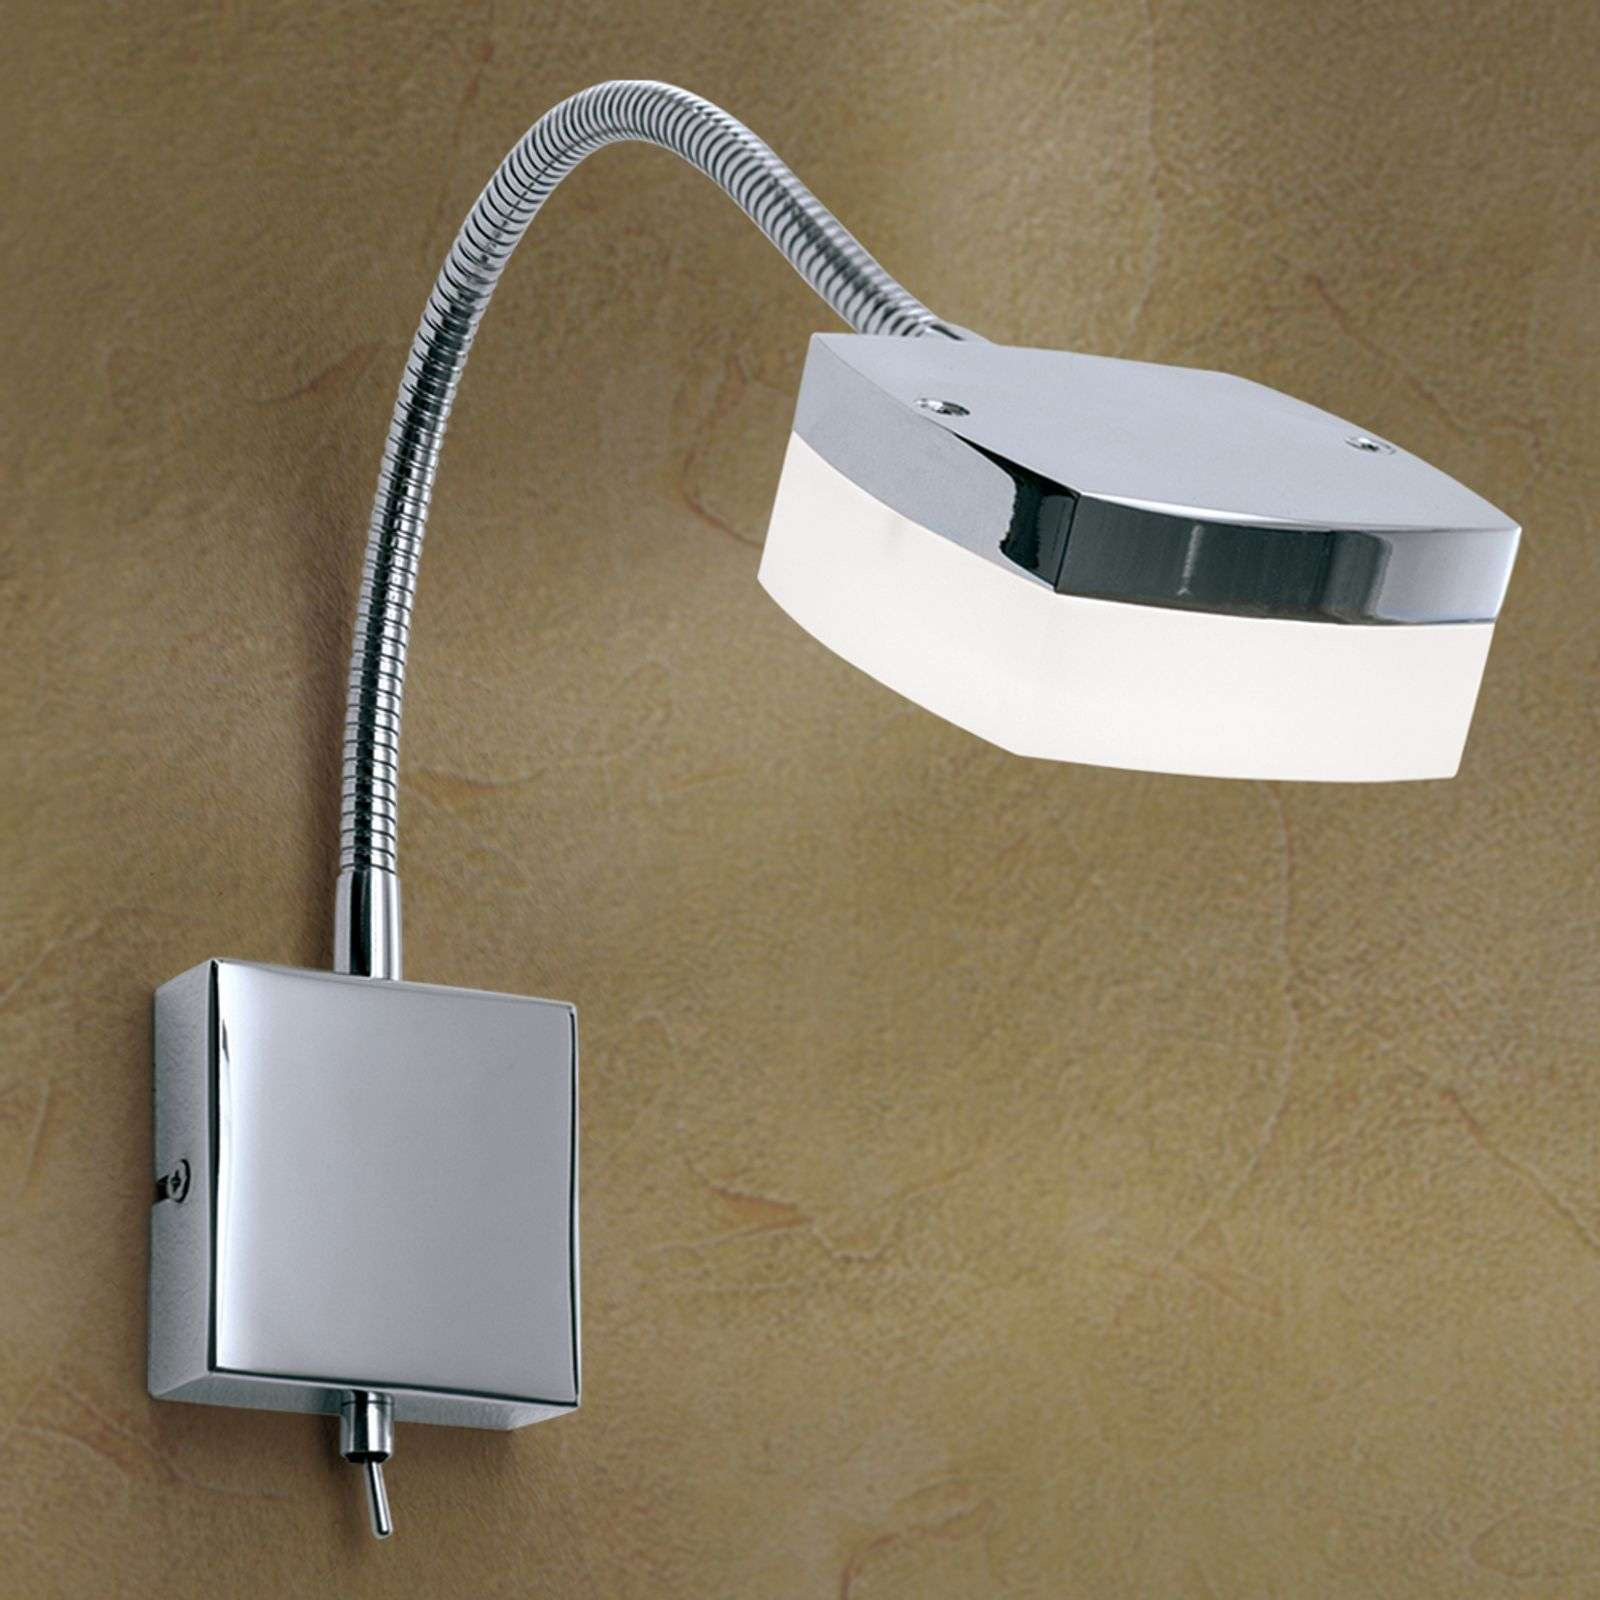 Lámpara de pared LED Narek con cuello de cisne